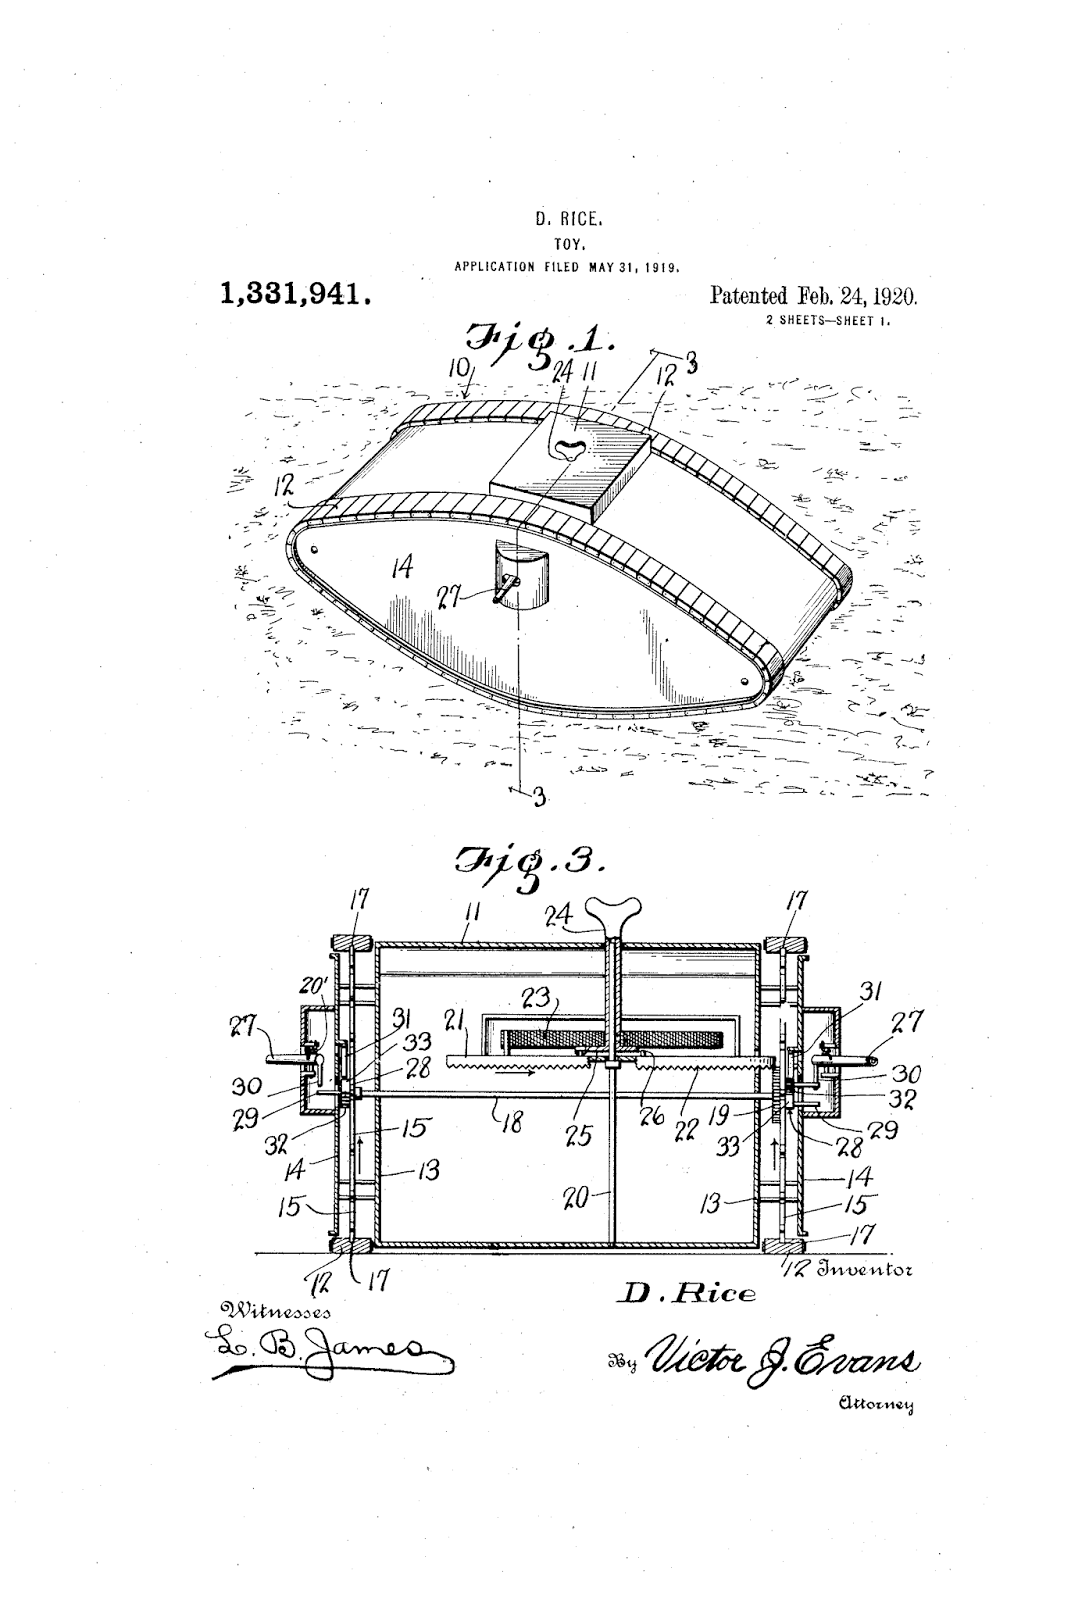 THE PATENT SEARCH BLOG: Toy tank inventions from World War I